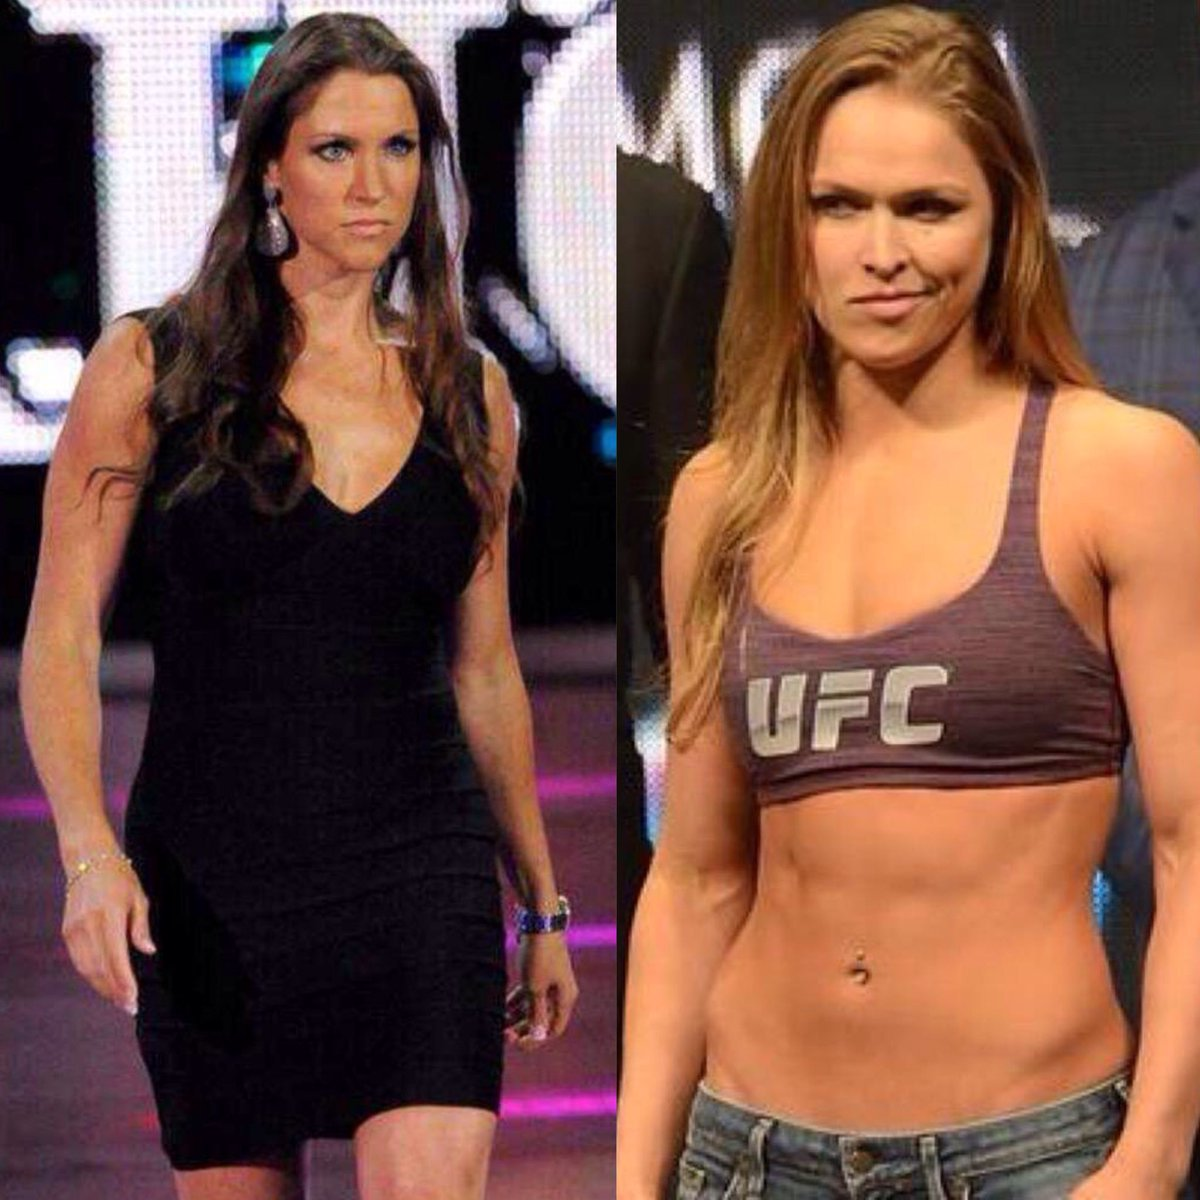 RT @WWEPPorn: Who's hotter?  RT for Stephanie McMahon Like for Ronda Rousey  #WWE #UFC #SDlive #MYC https://t.co/pPdnpFzM6w